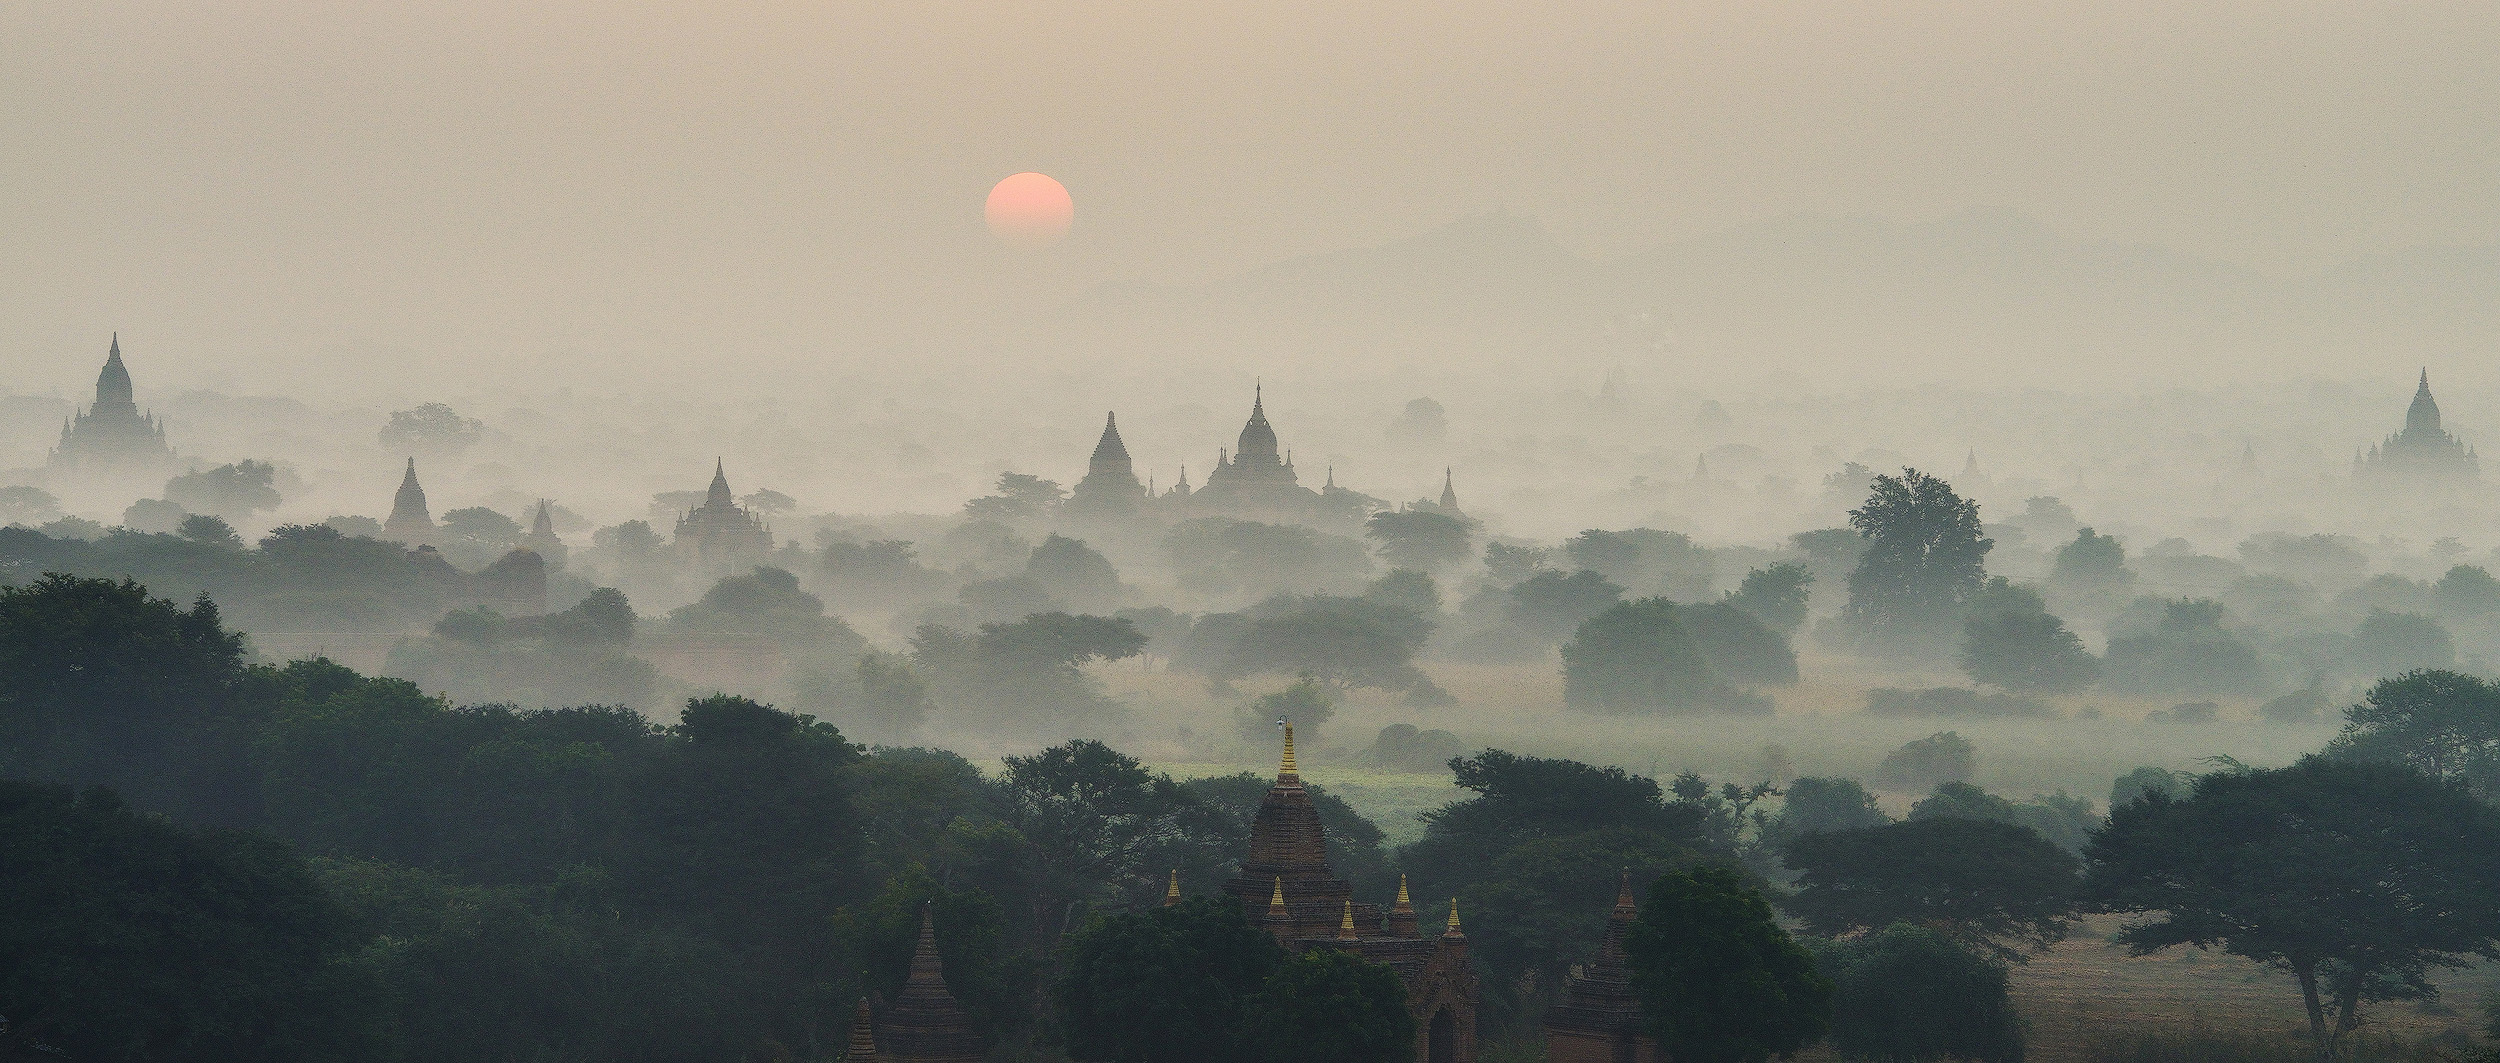 Temple Sunrise   Another image from a wonderful sunrise at the temples of Bagan. The plain of Bagan has around 2000 temples scattered over a few square kilometers, and in the morning mist rolls access the plain and the neighboring River Ayerwaddy, making each temple appear like an individual island in the fog. It really is a remarkable scene.